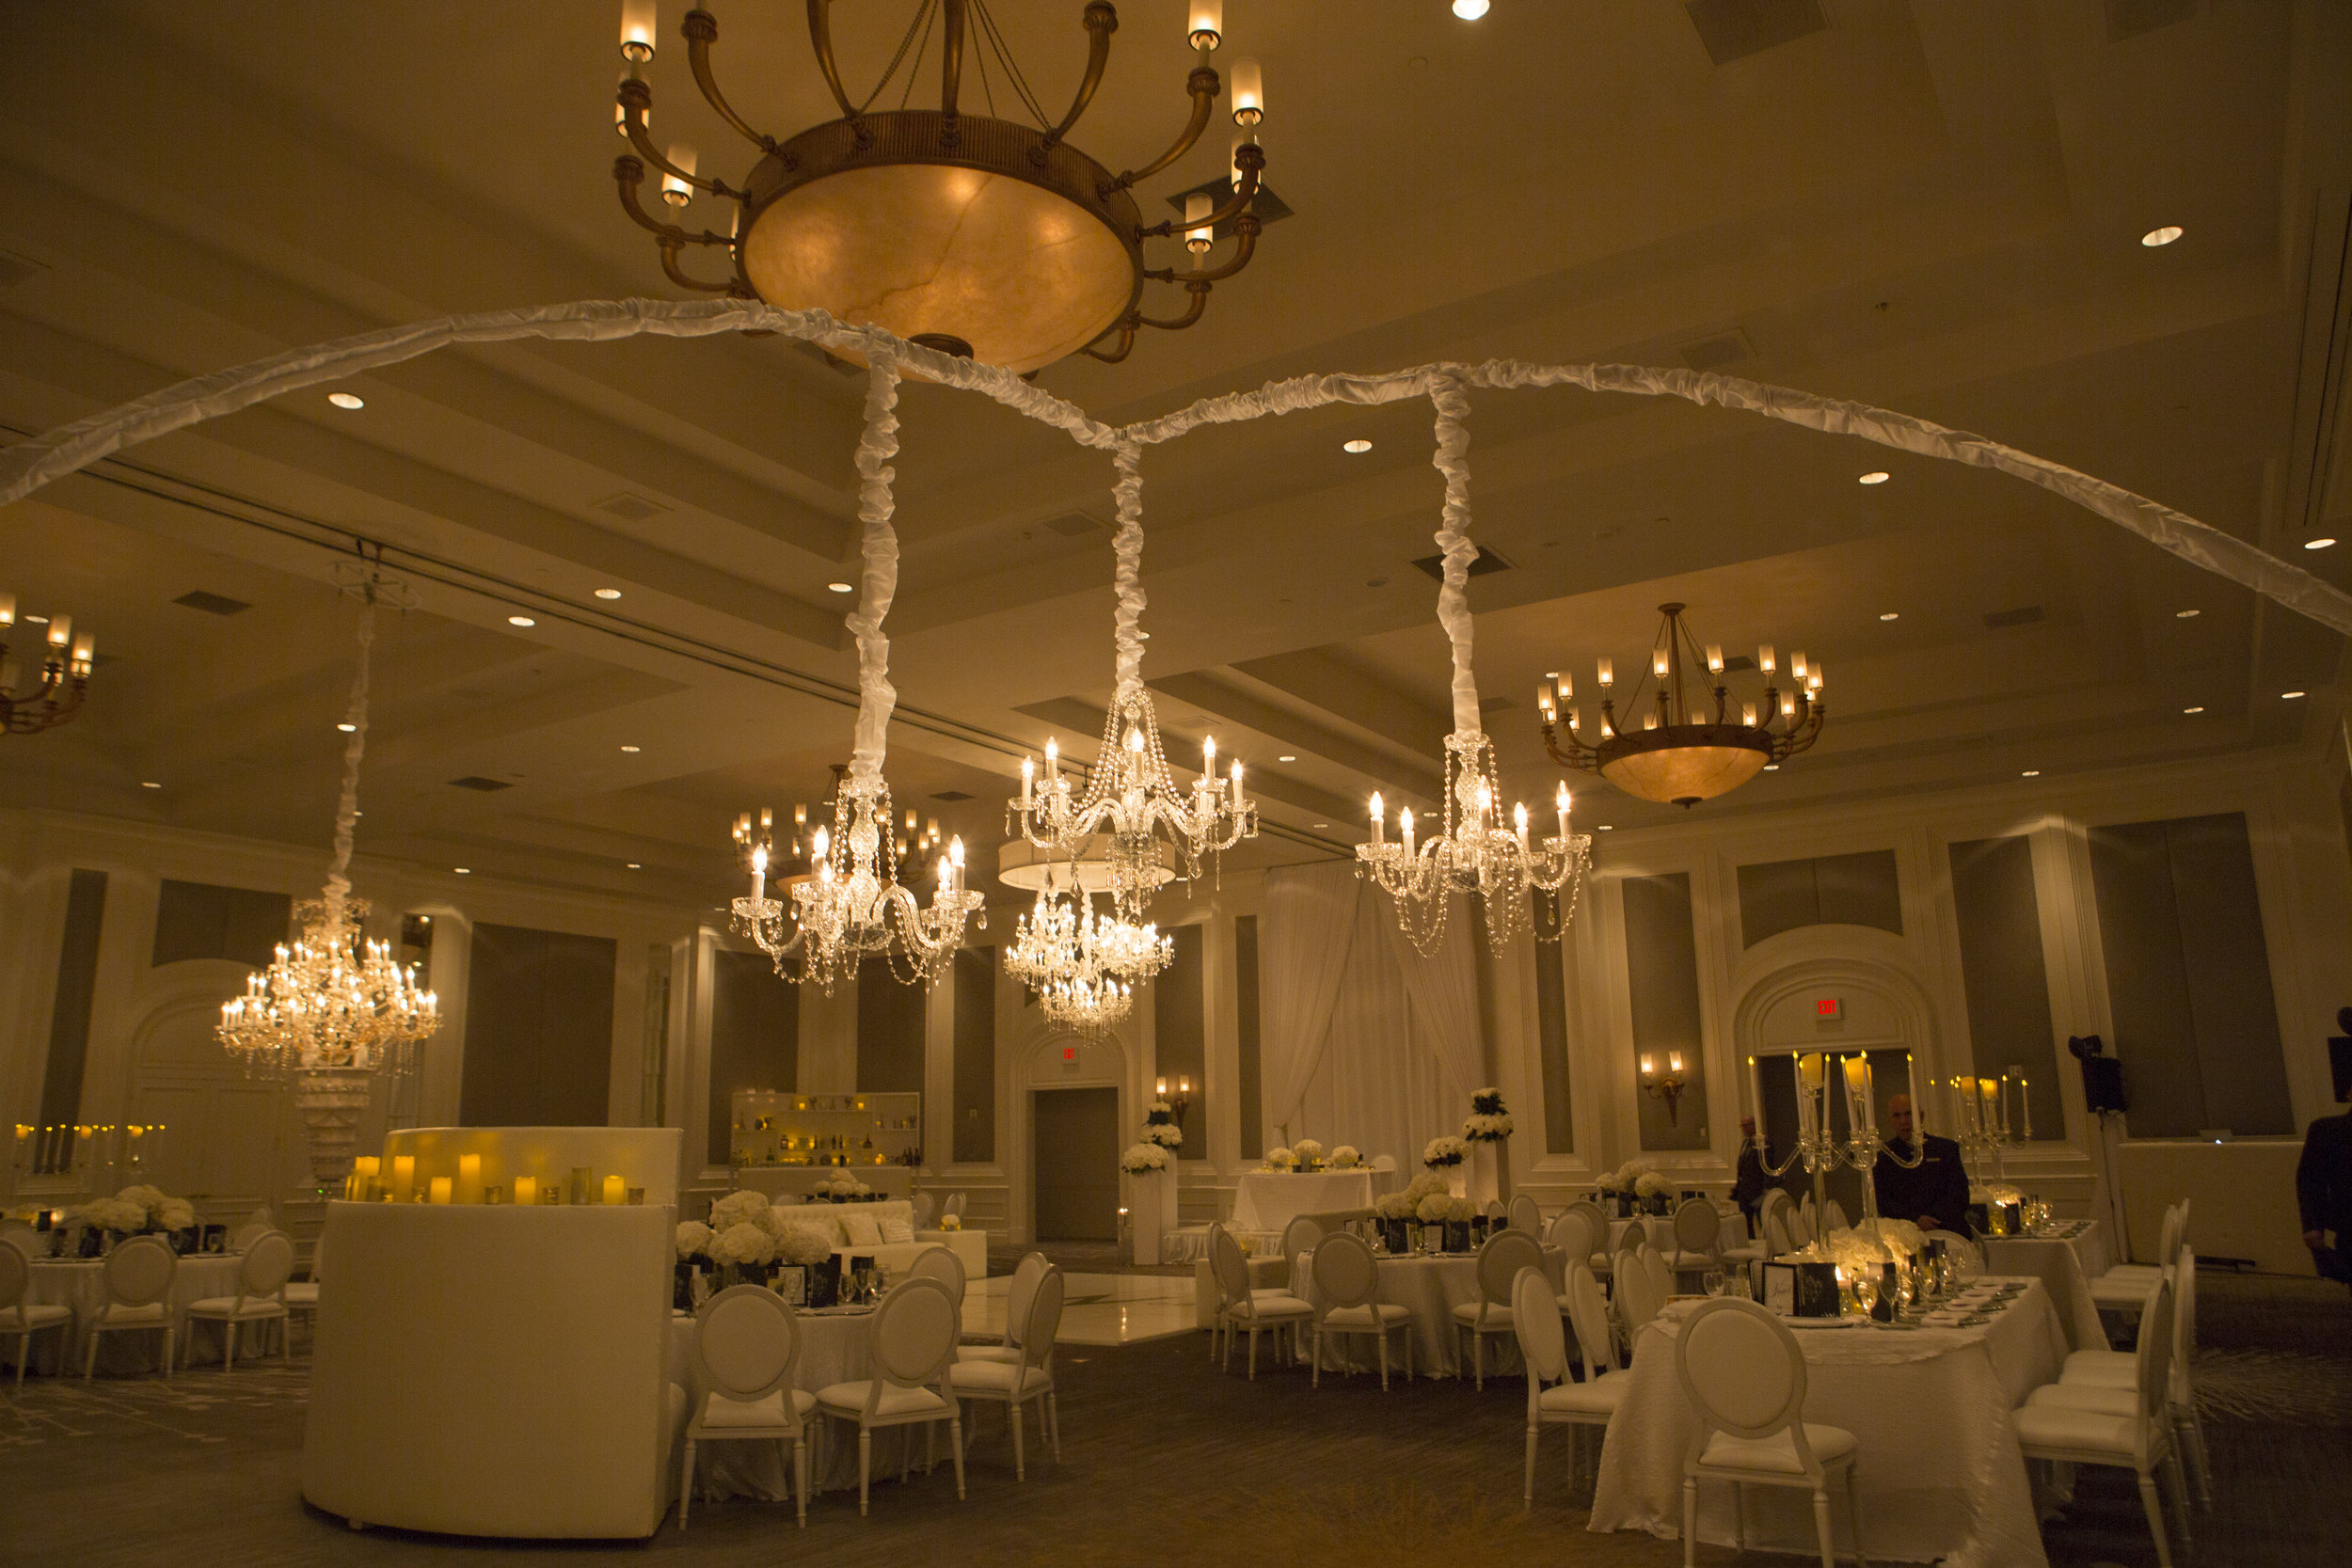 Chandelier wedding with white on white decor.  Four Seasons Wedding by Las Vegas Wedding Planner Andrea Eppolito. Image by AltF Photography. Decor by DBD Vegas.